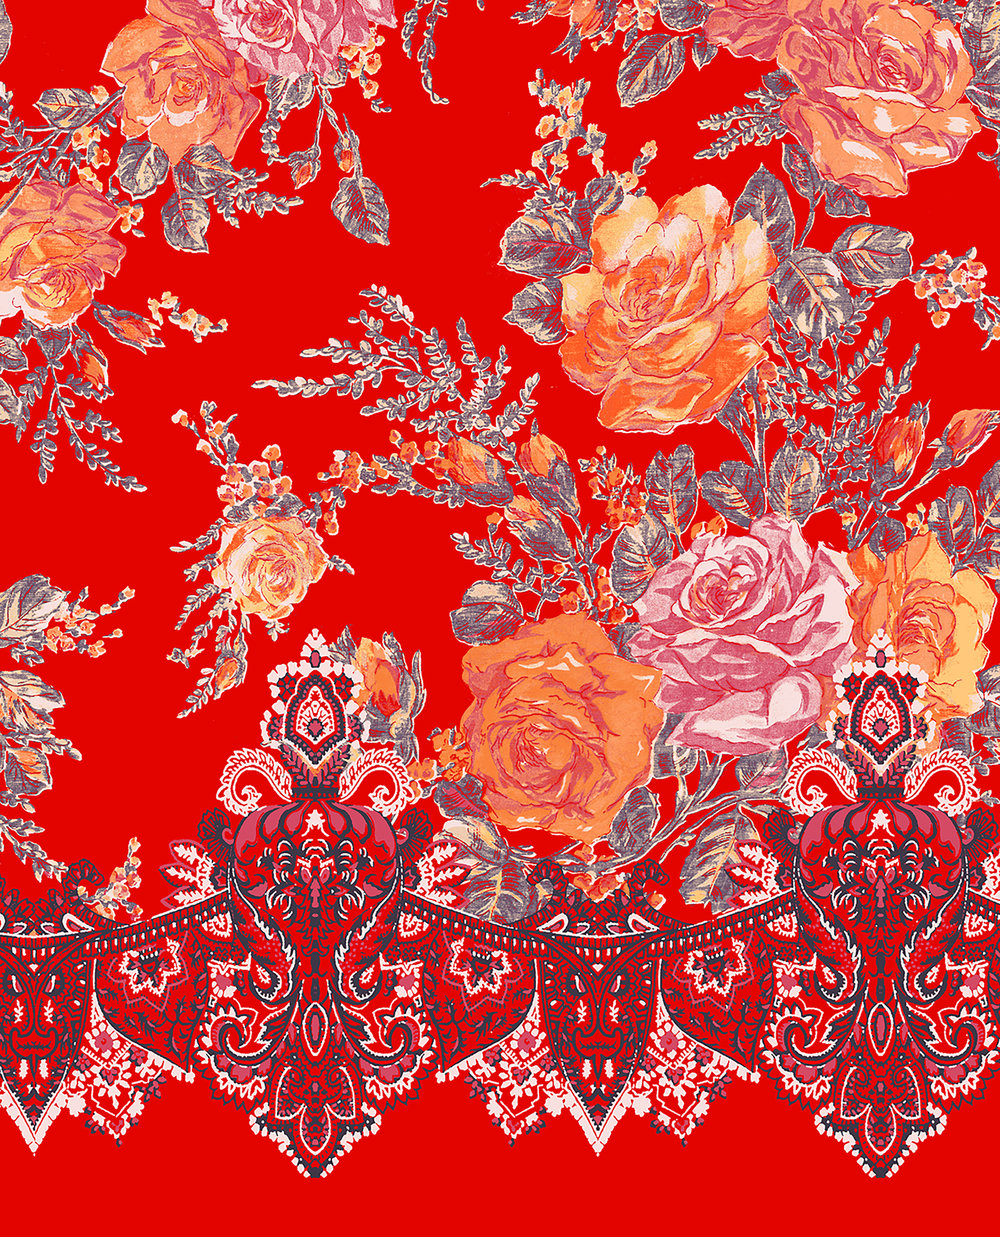 930 big flower roses and rose motif rose v14 final final redkk.jpg